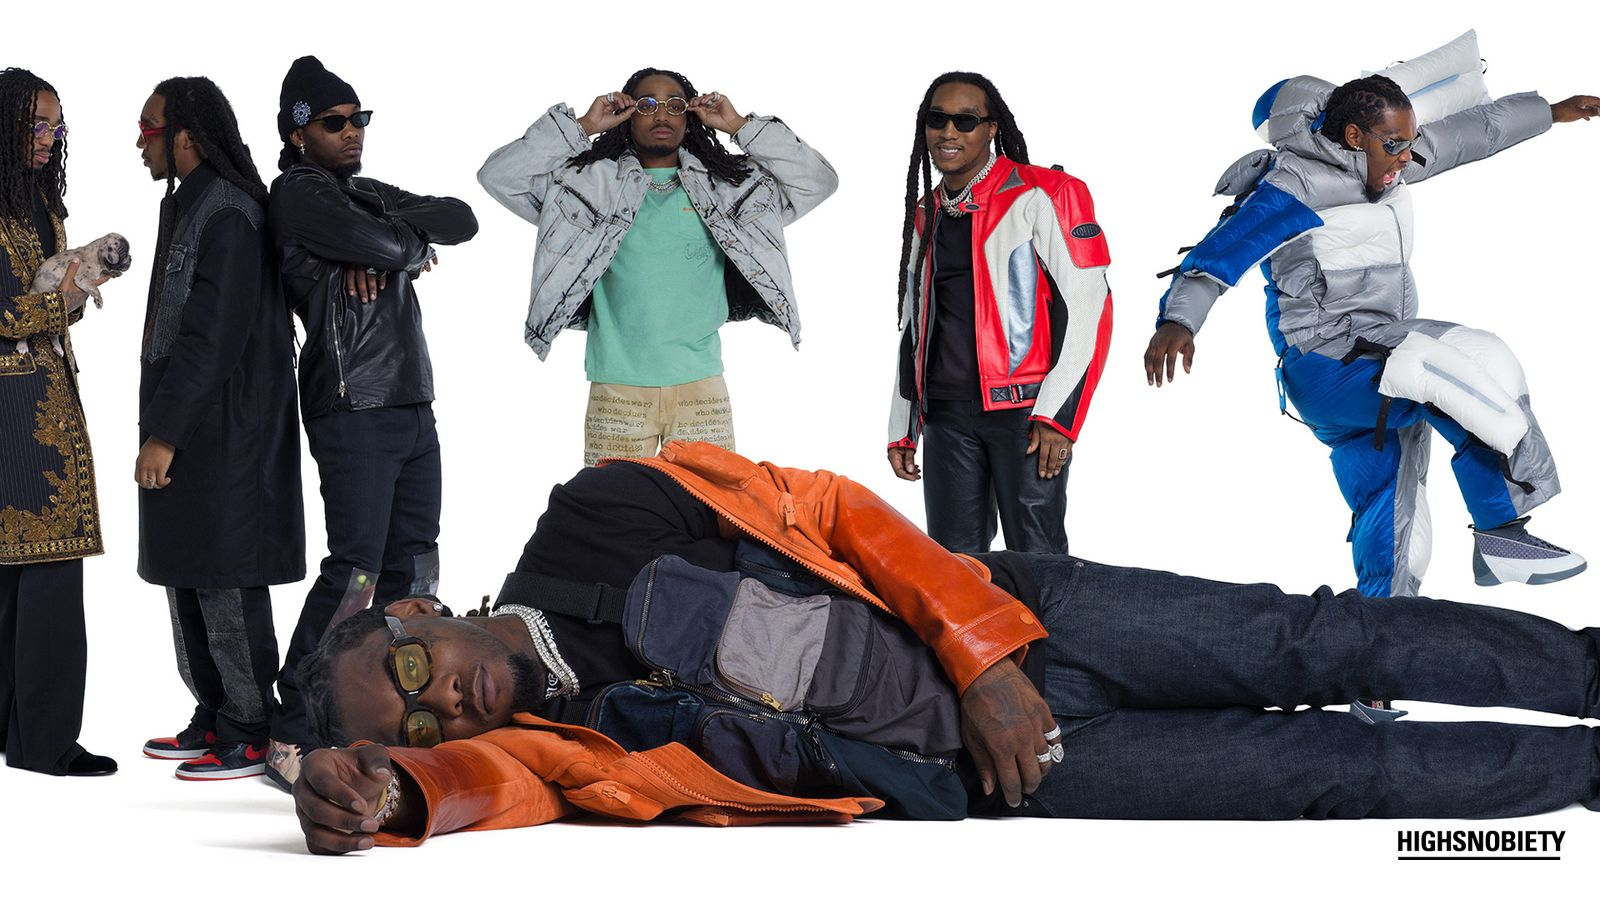 ED_WEB_HS_Zoom_Backgrounds-01-migos